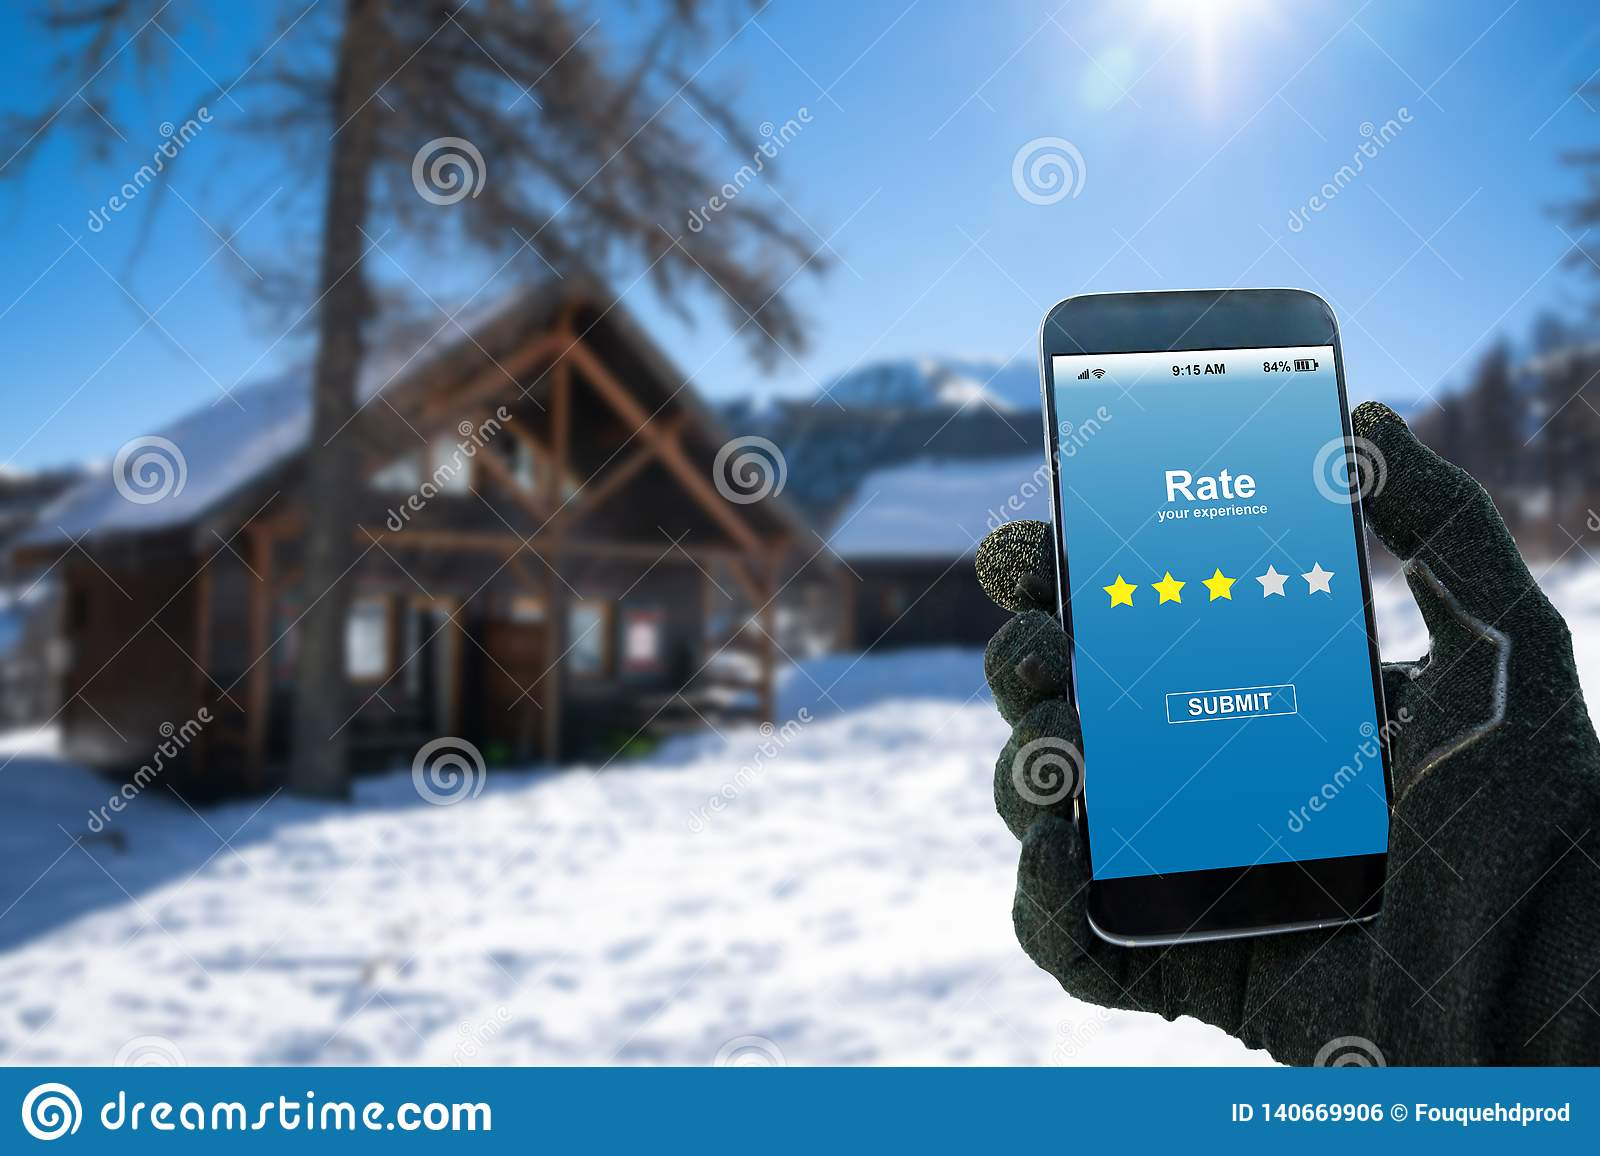 Man rating his experience with the stars on the screen of the smartphone app